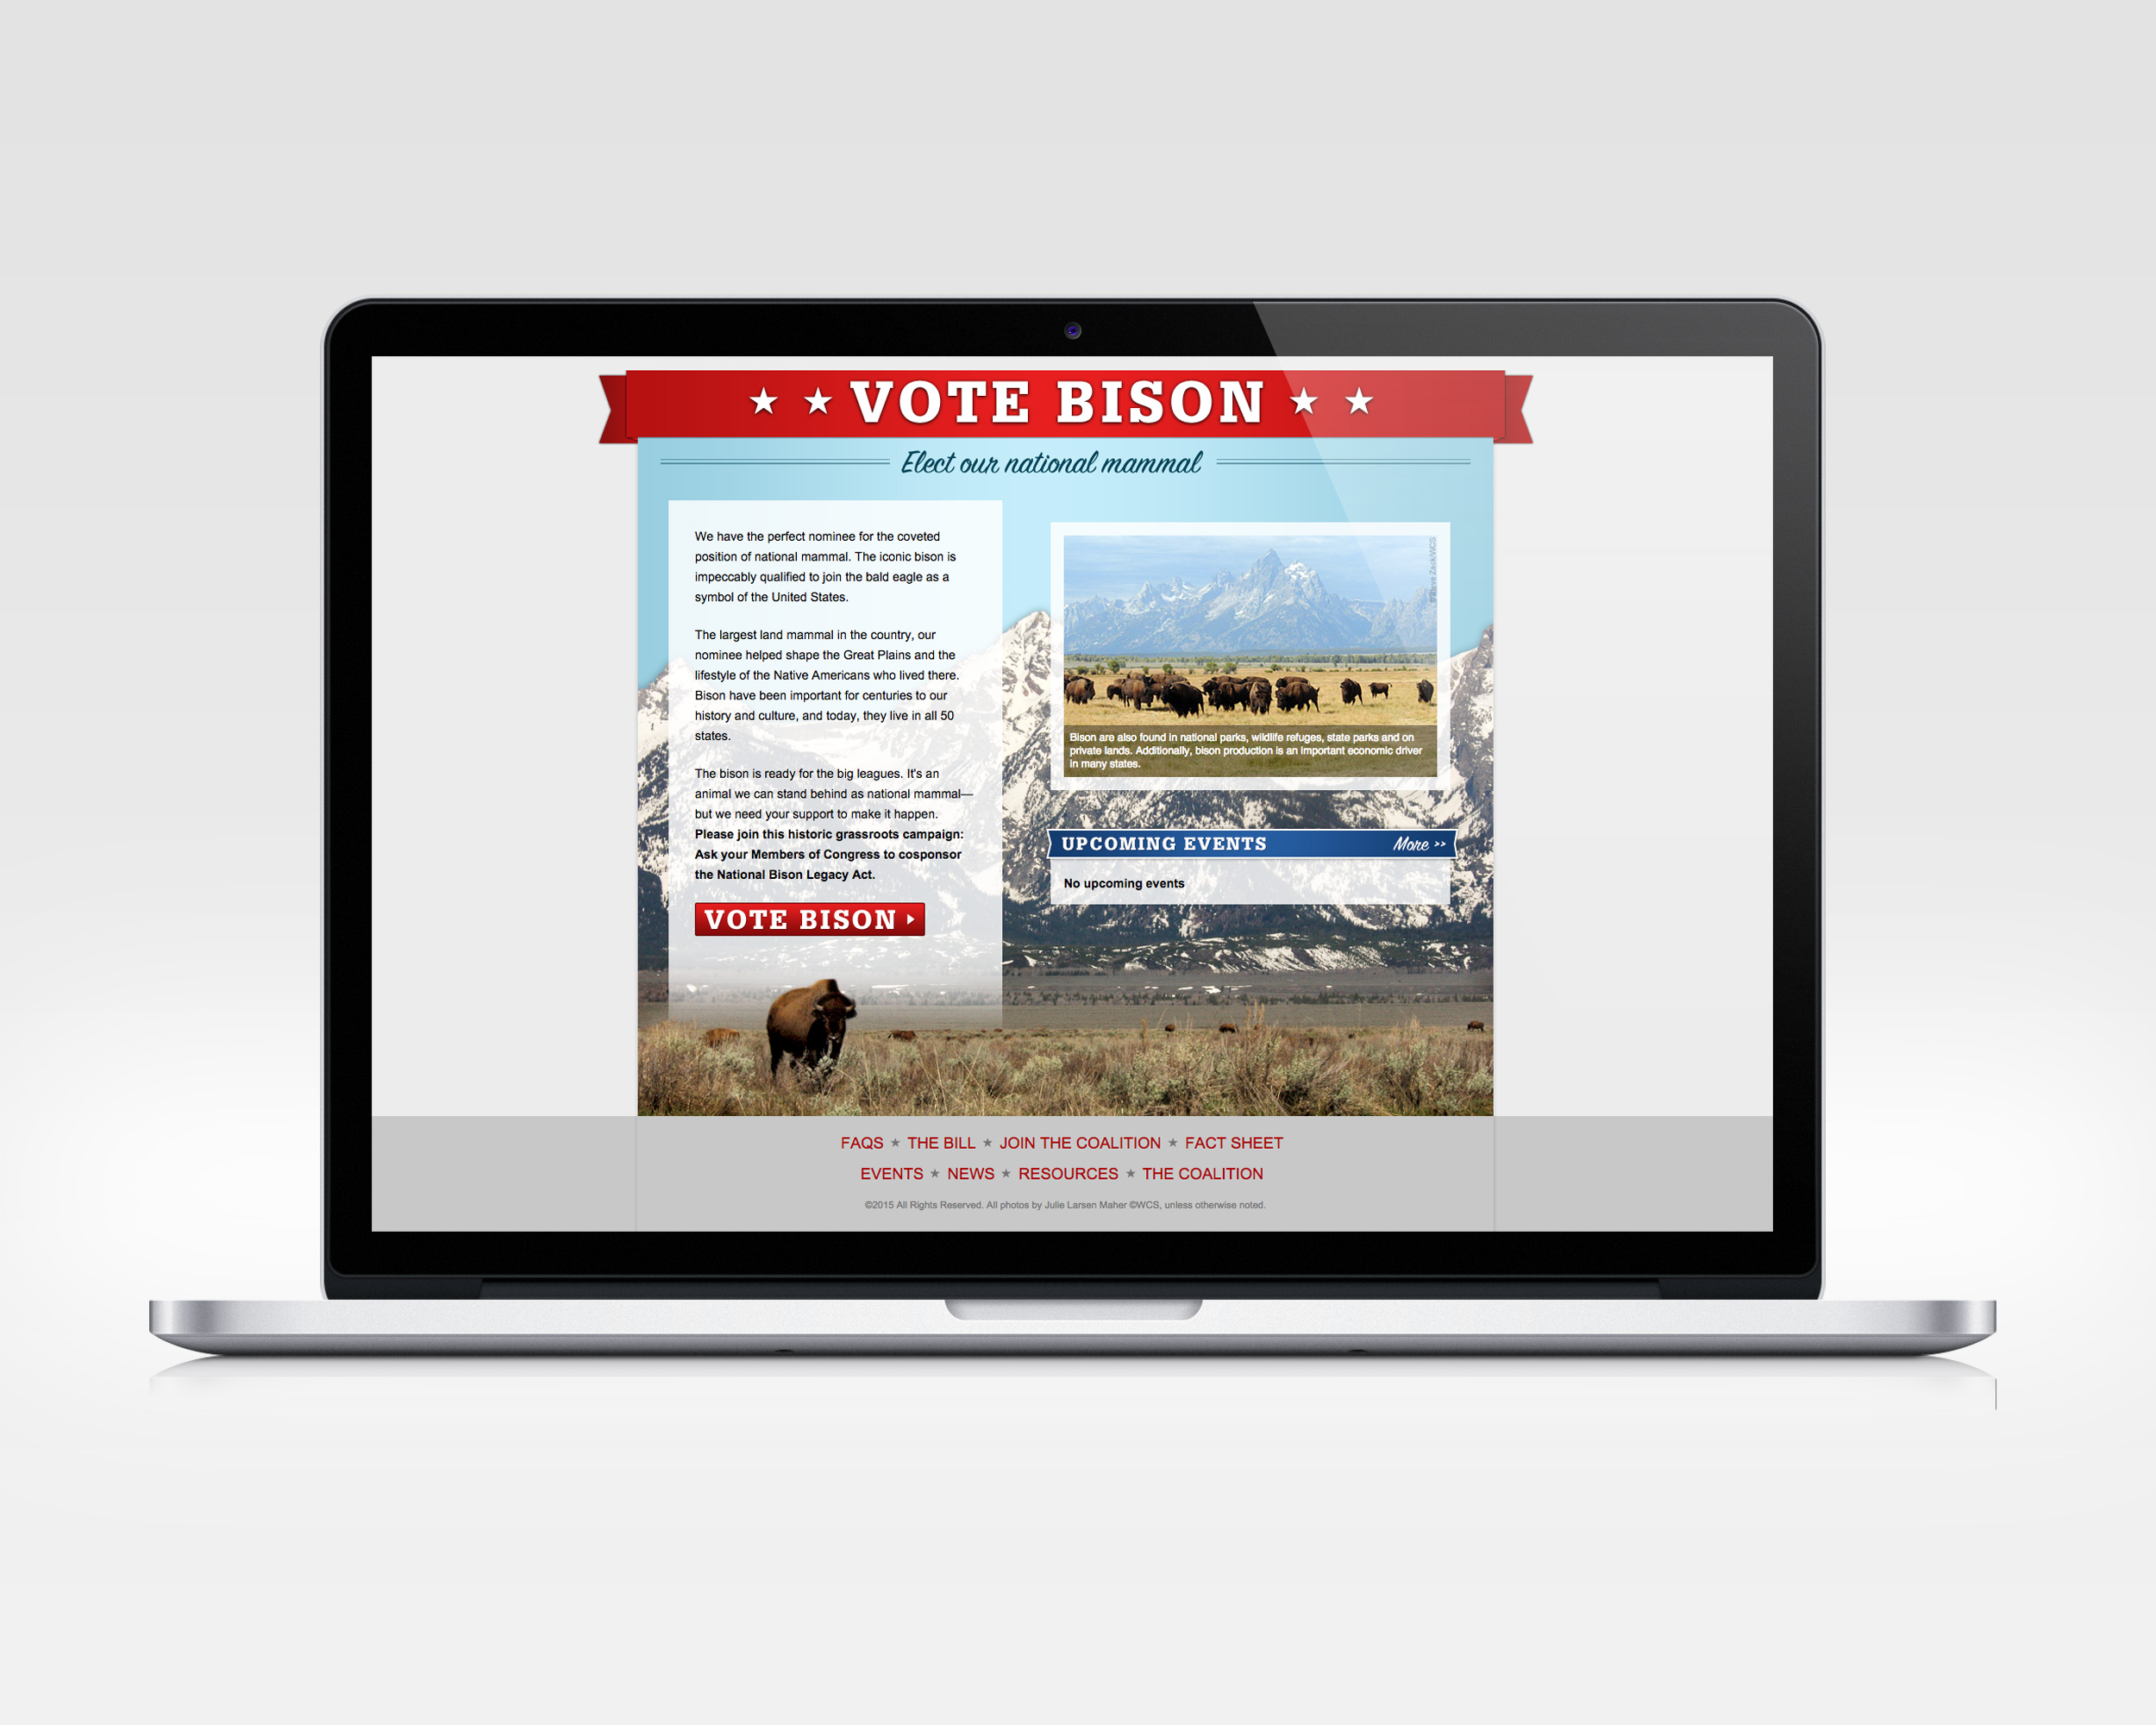 vote bison   design, ux, development   Microsite to support effortto create afederal designation of bison as the national mammal.   View Project